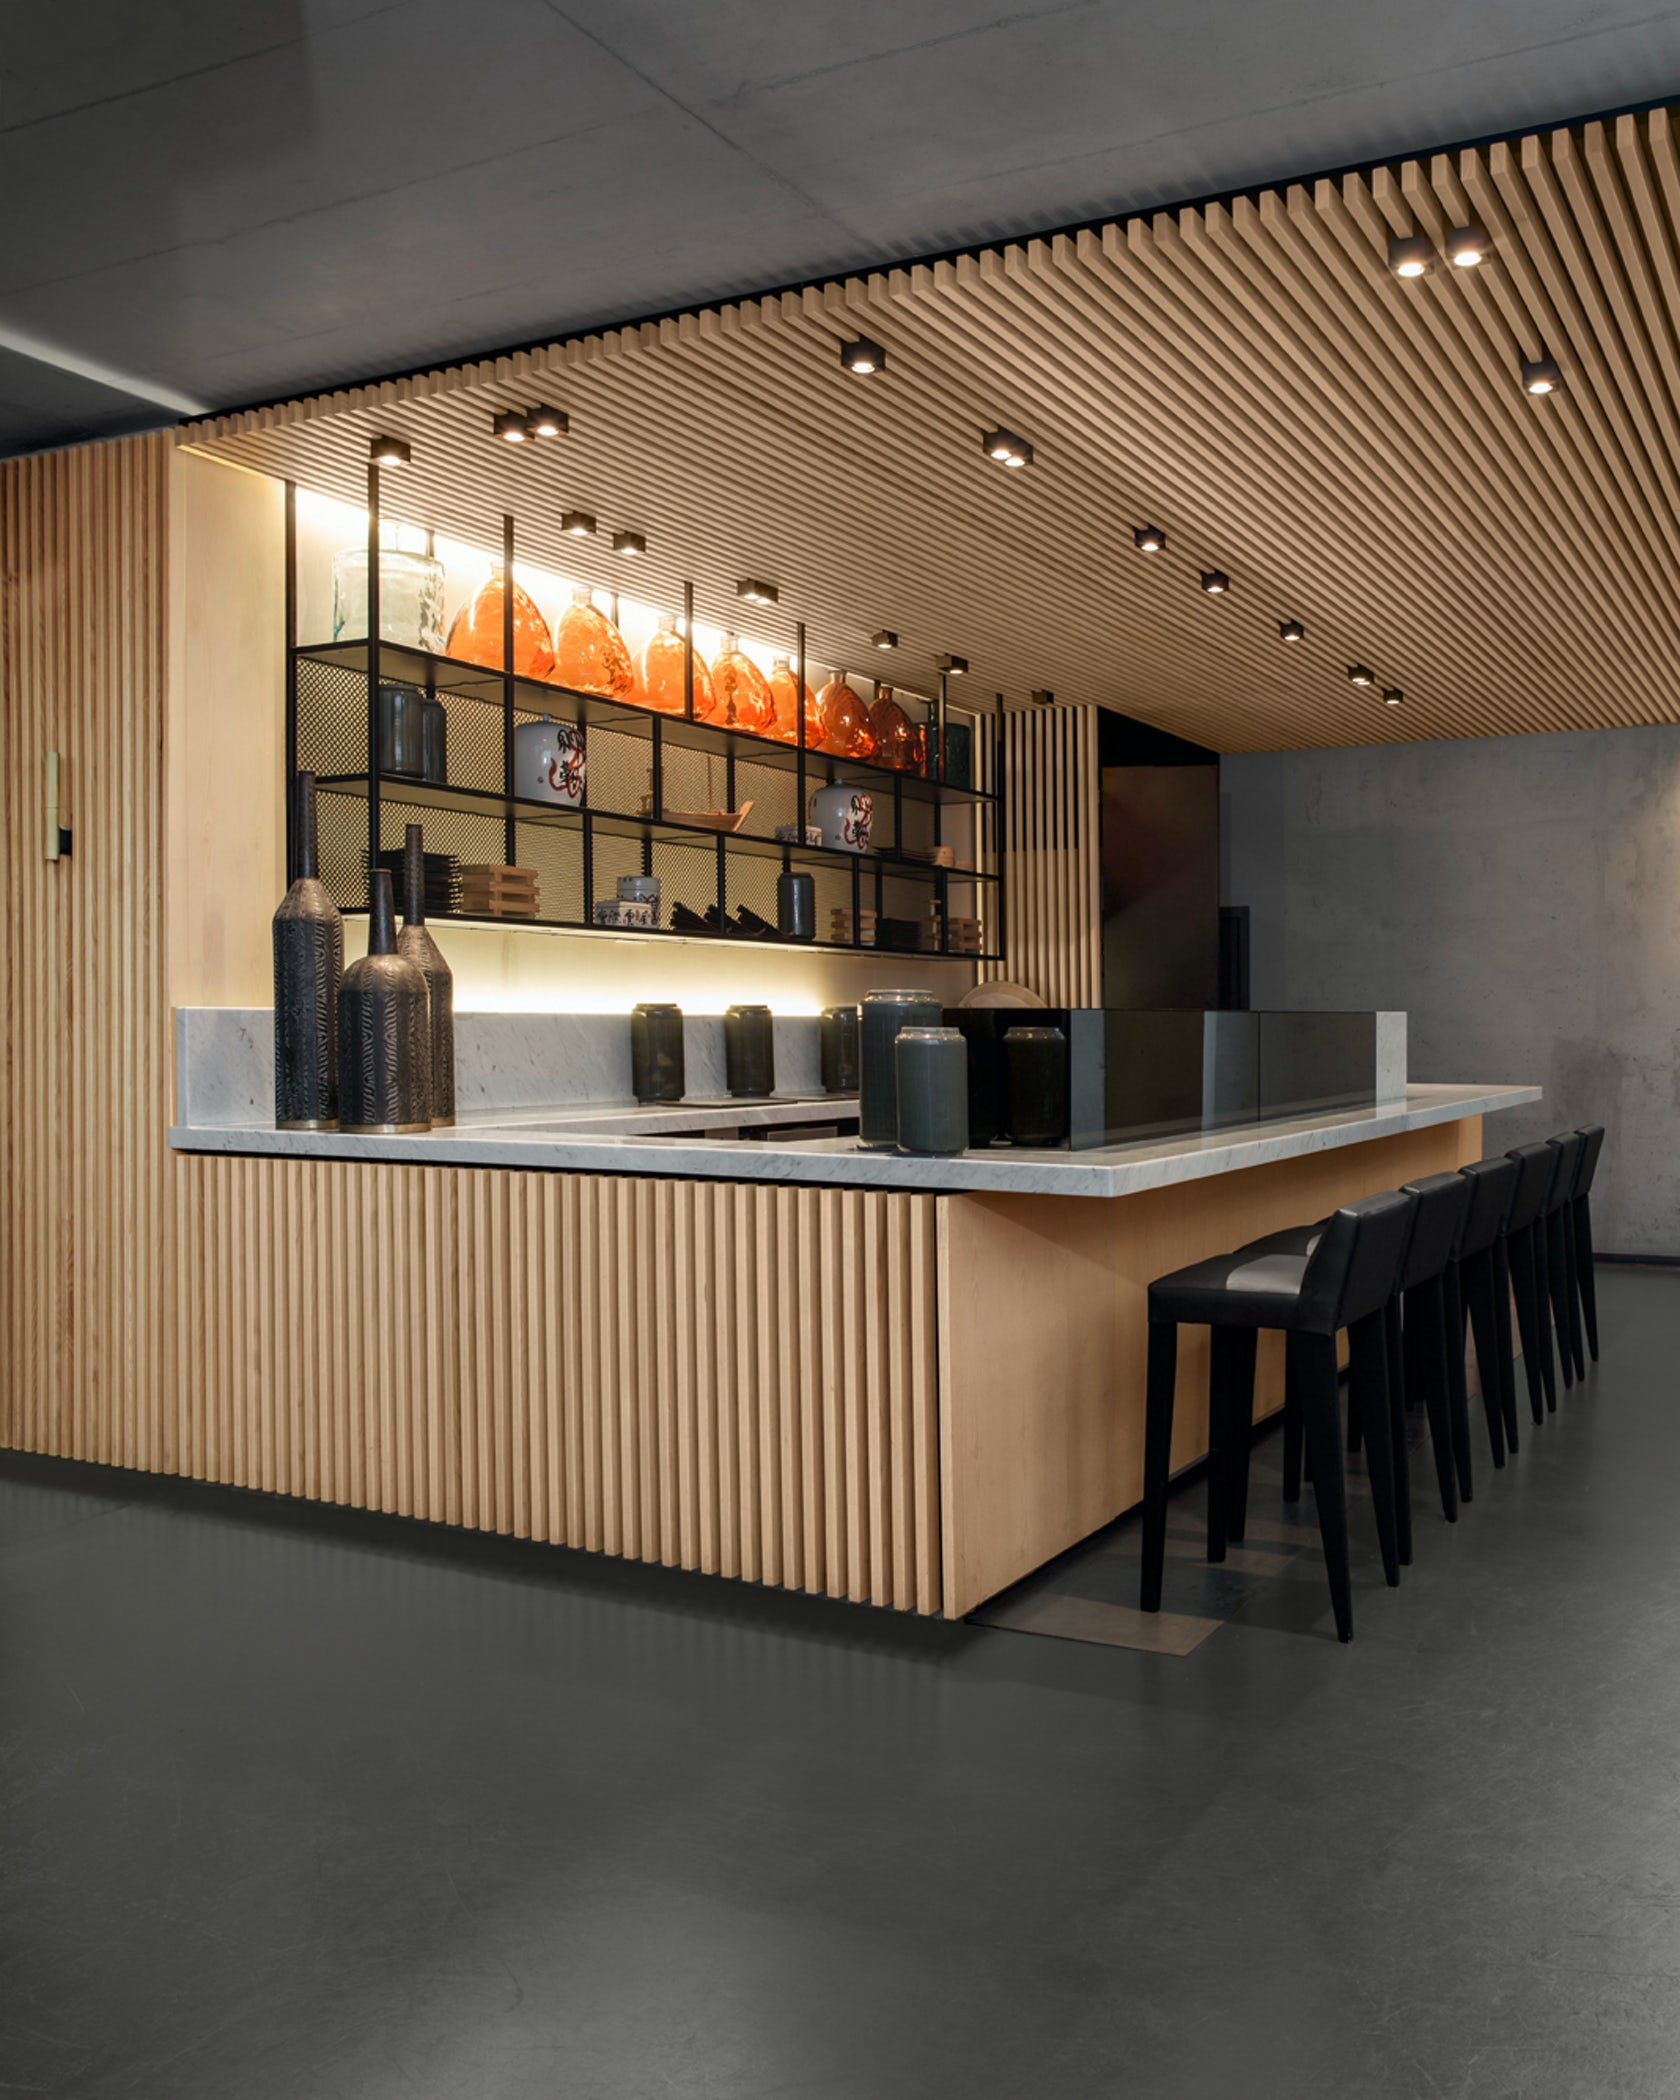 Bar Counter Ideas Design: Holbein's Sushi Bar